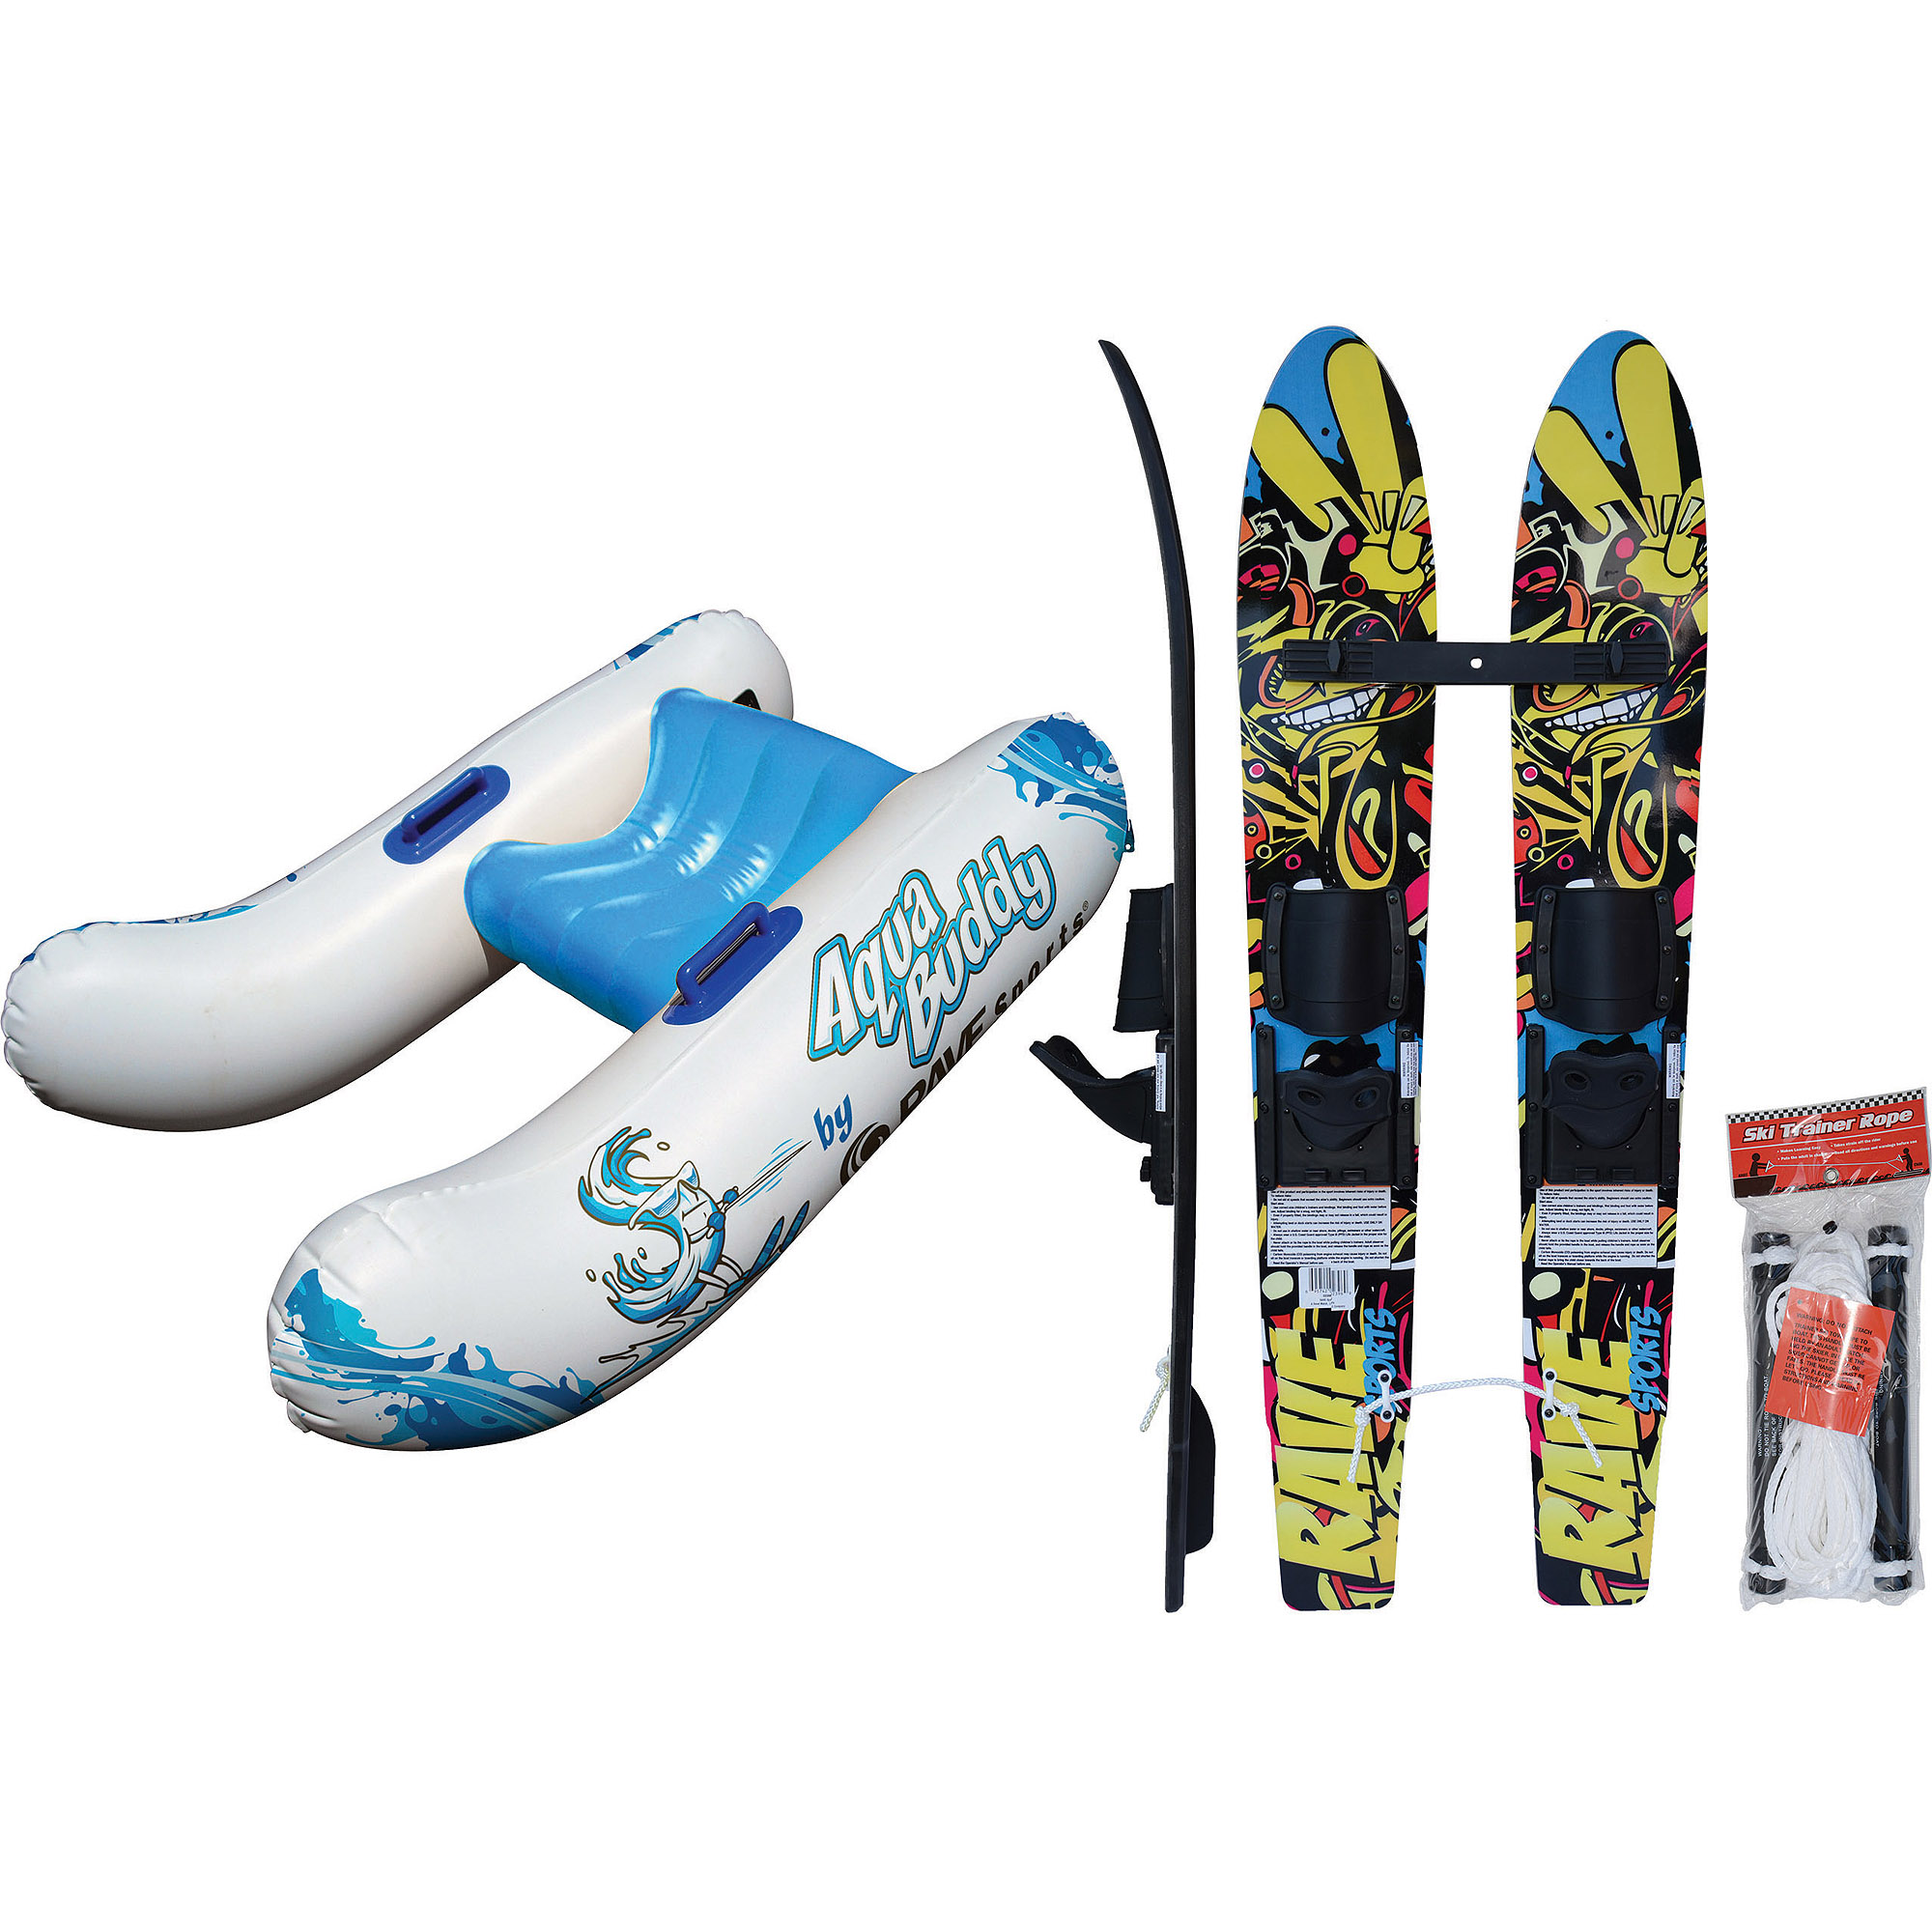 Rave Sports Water Ski Starter Package by Rave Sports